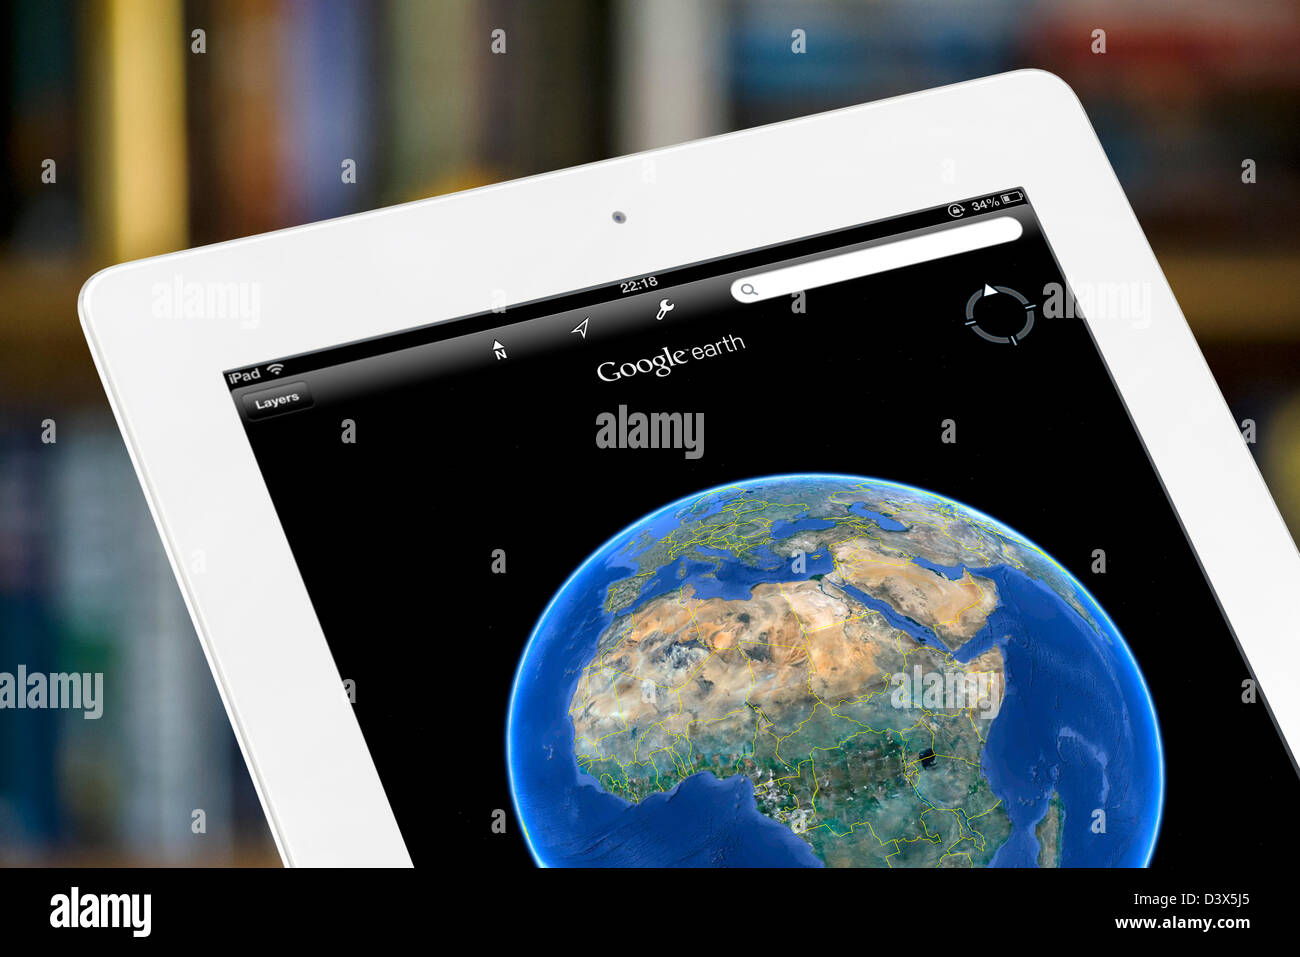 Google earth viewed on a 4th generation iPad - Stock Image